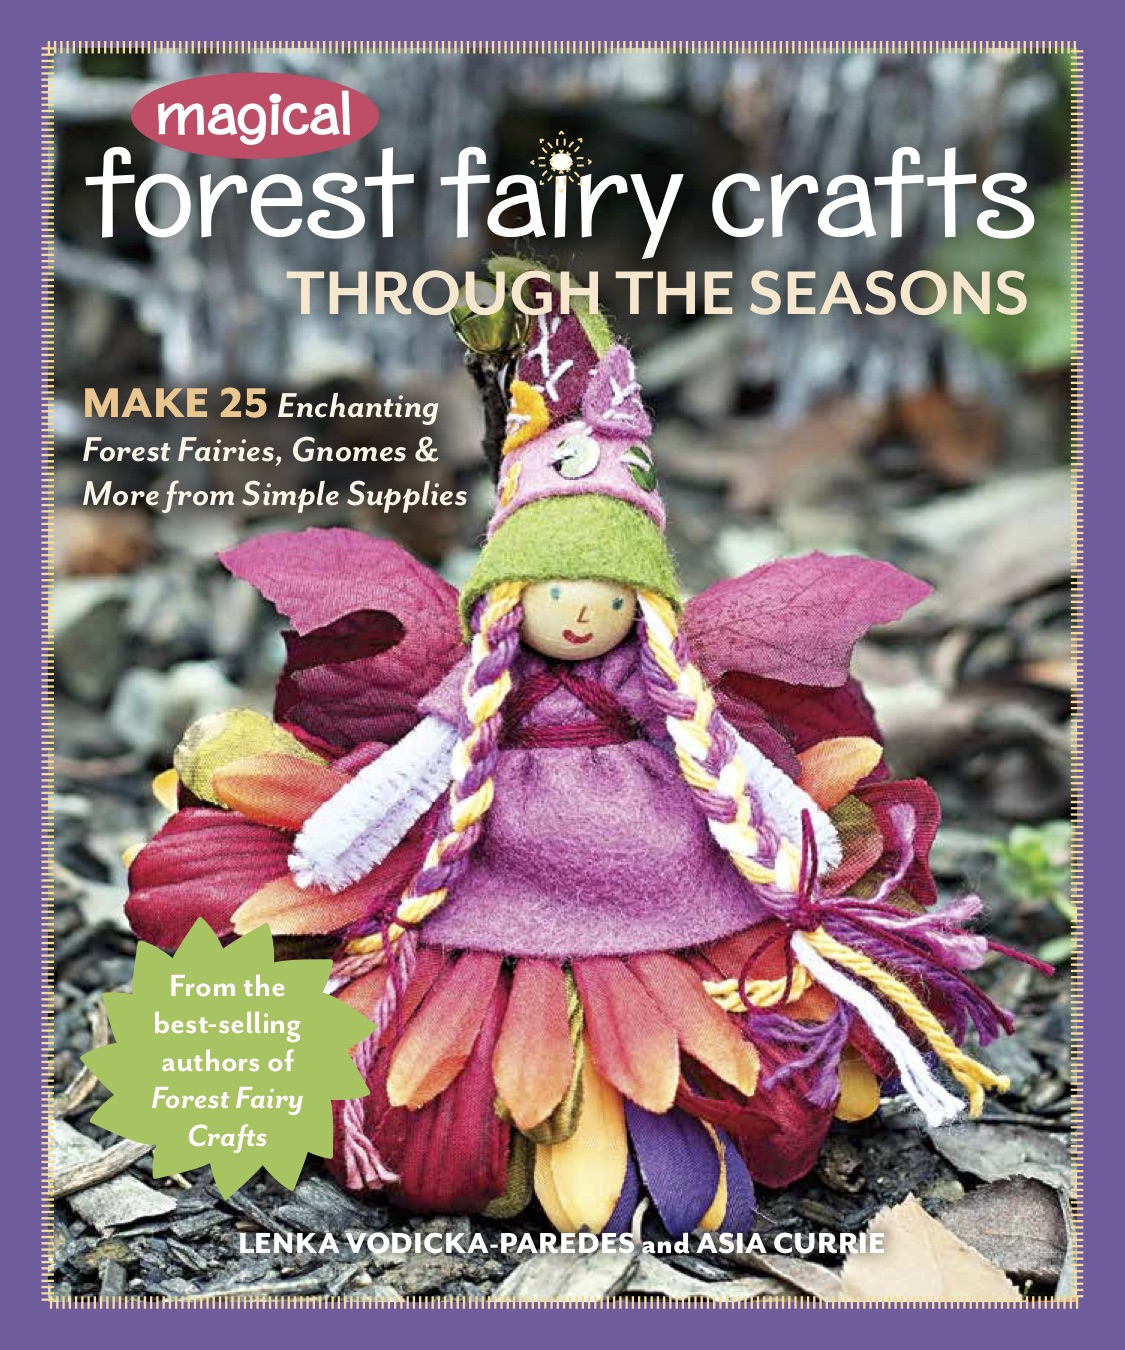 Buy Magical Forest Fairy Crafts through the Seasons on Amazon